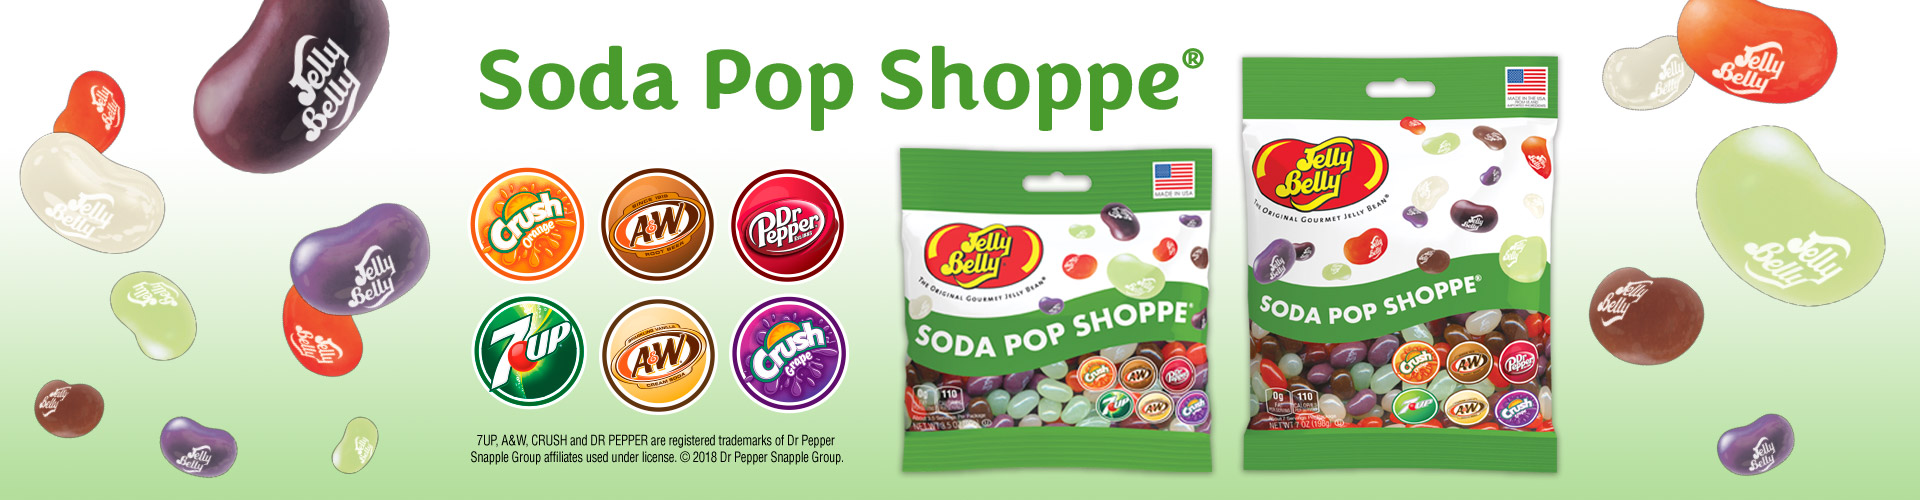 Jelly Belly Soda Pop Shoppe 3.5 oz and 7 oz bags with Orange Crush, A&W Root Beer, Dr. Pepper, 7UP, A&W Cream Soda, & Grape Crush logos.